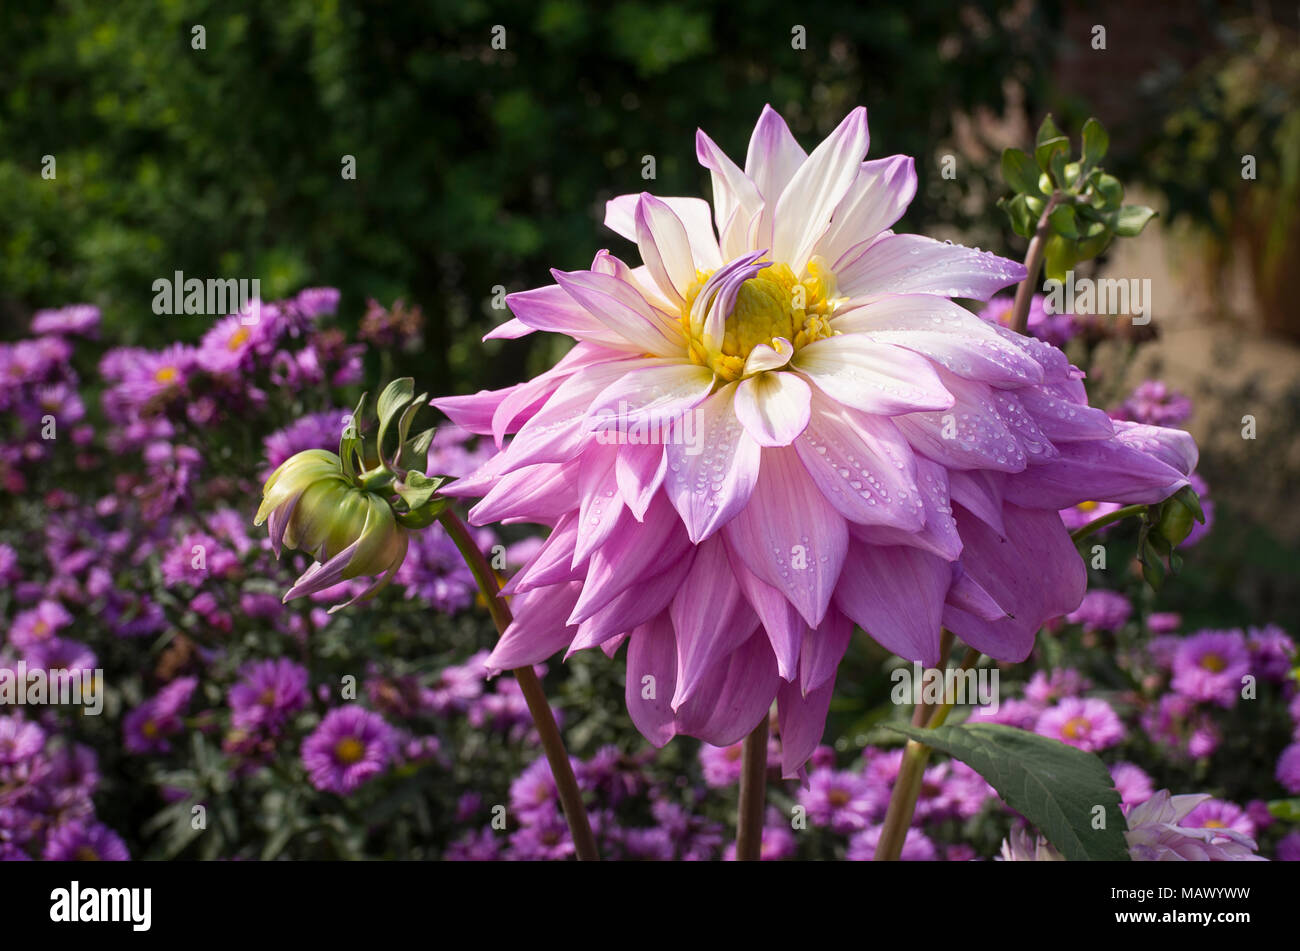 Giant Pink Dahlia Sir Alf Ramsey In An English Garden In Flower In